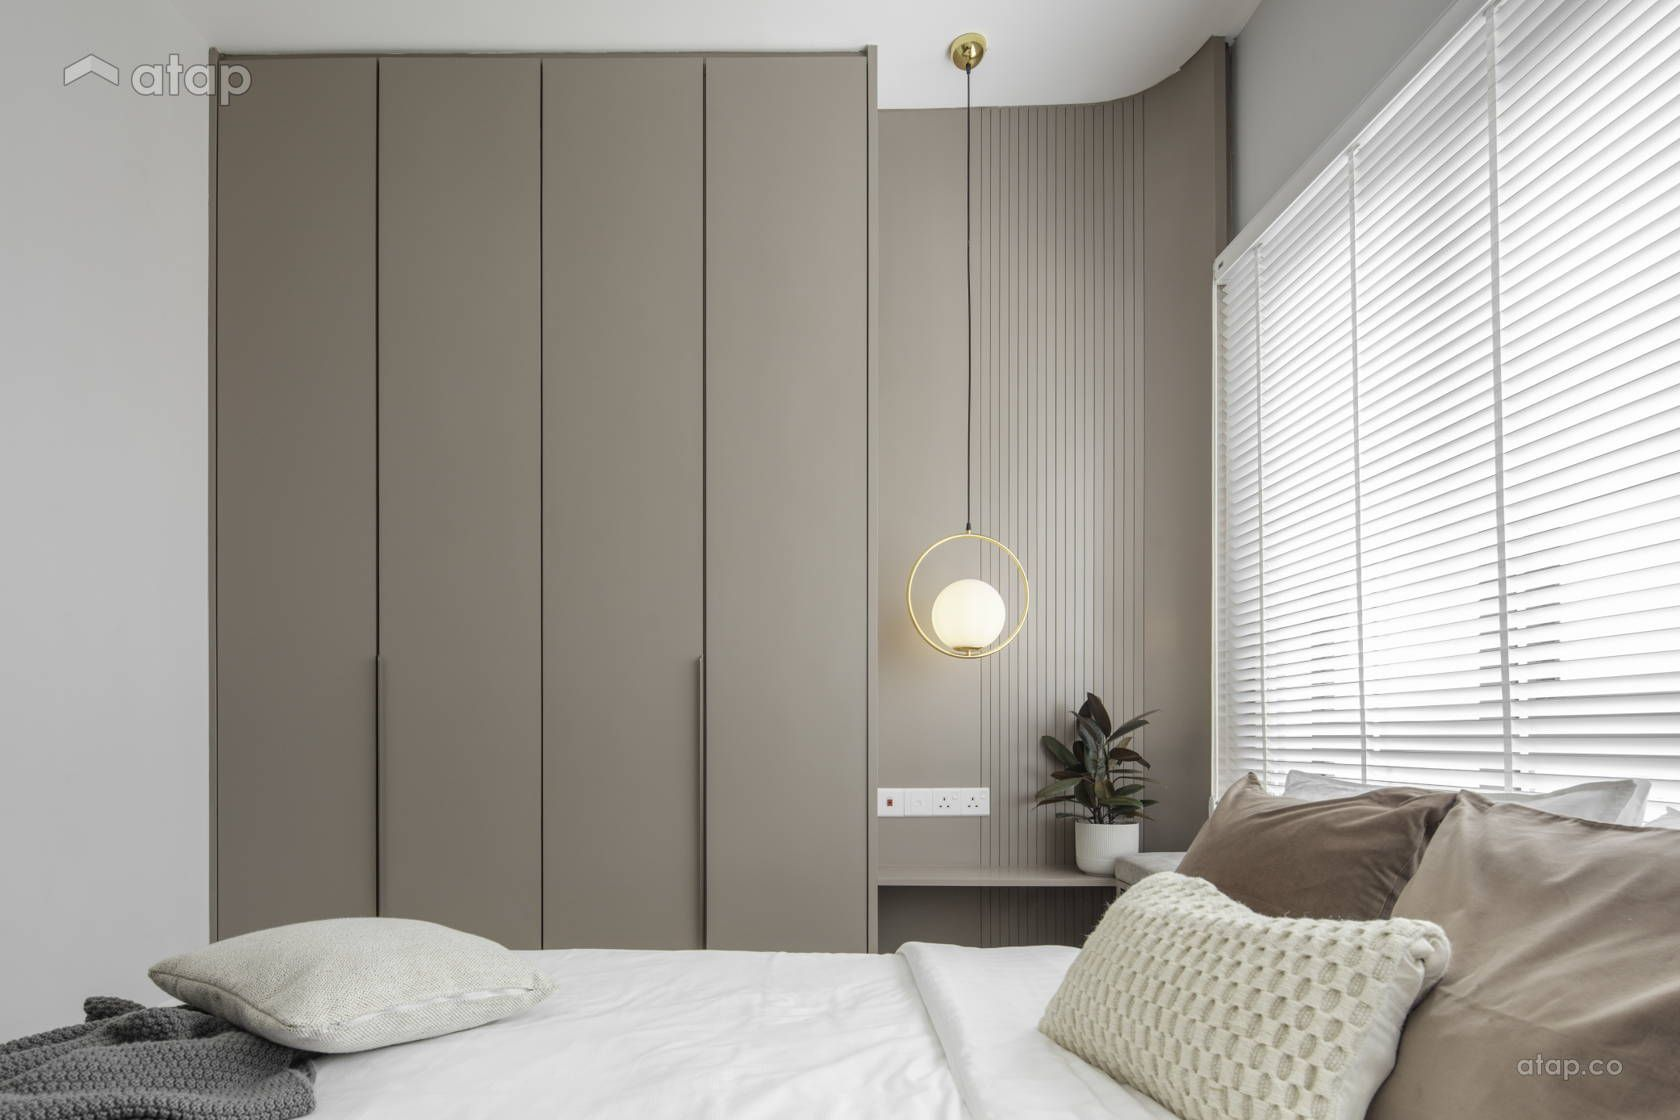 Minimalistic Scandinavian Bedroom Condominium Design Ideas Photos Malaysia Atap Co In 2020 Condominium Design Minimal Bedroom Design Bedroom Design